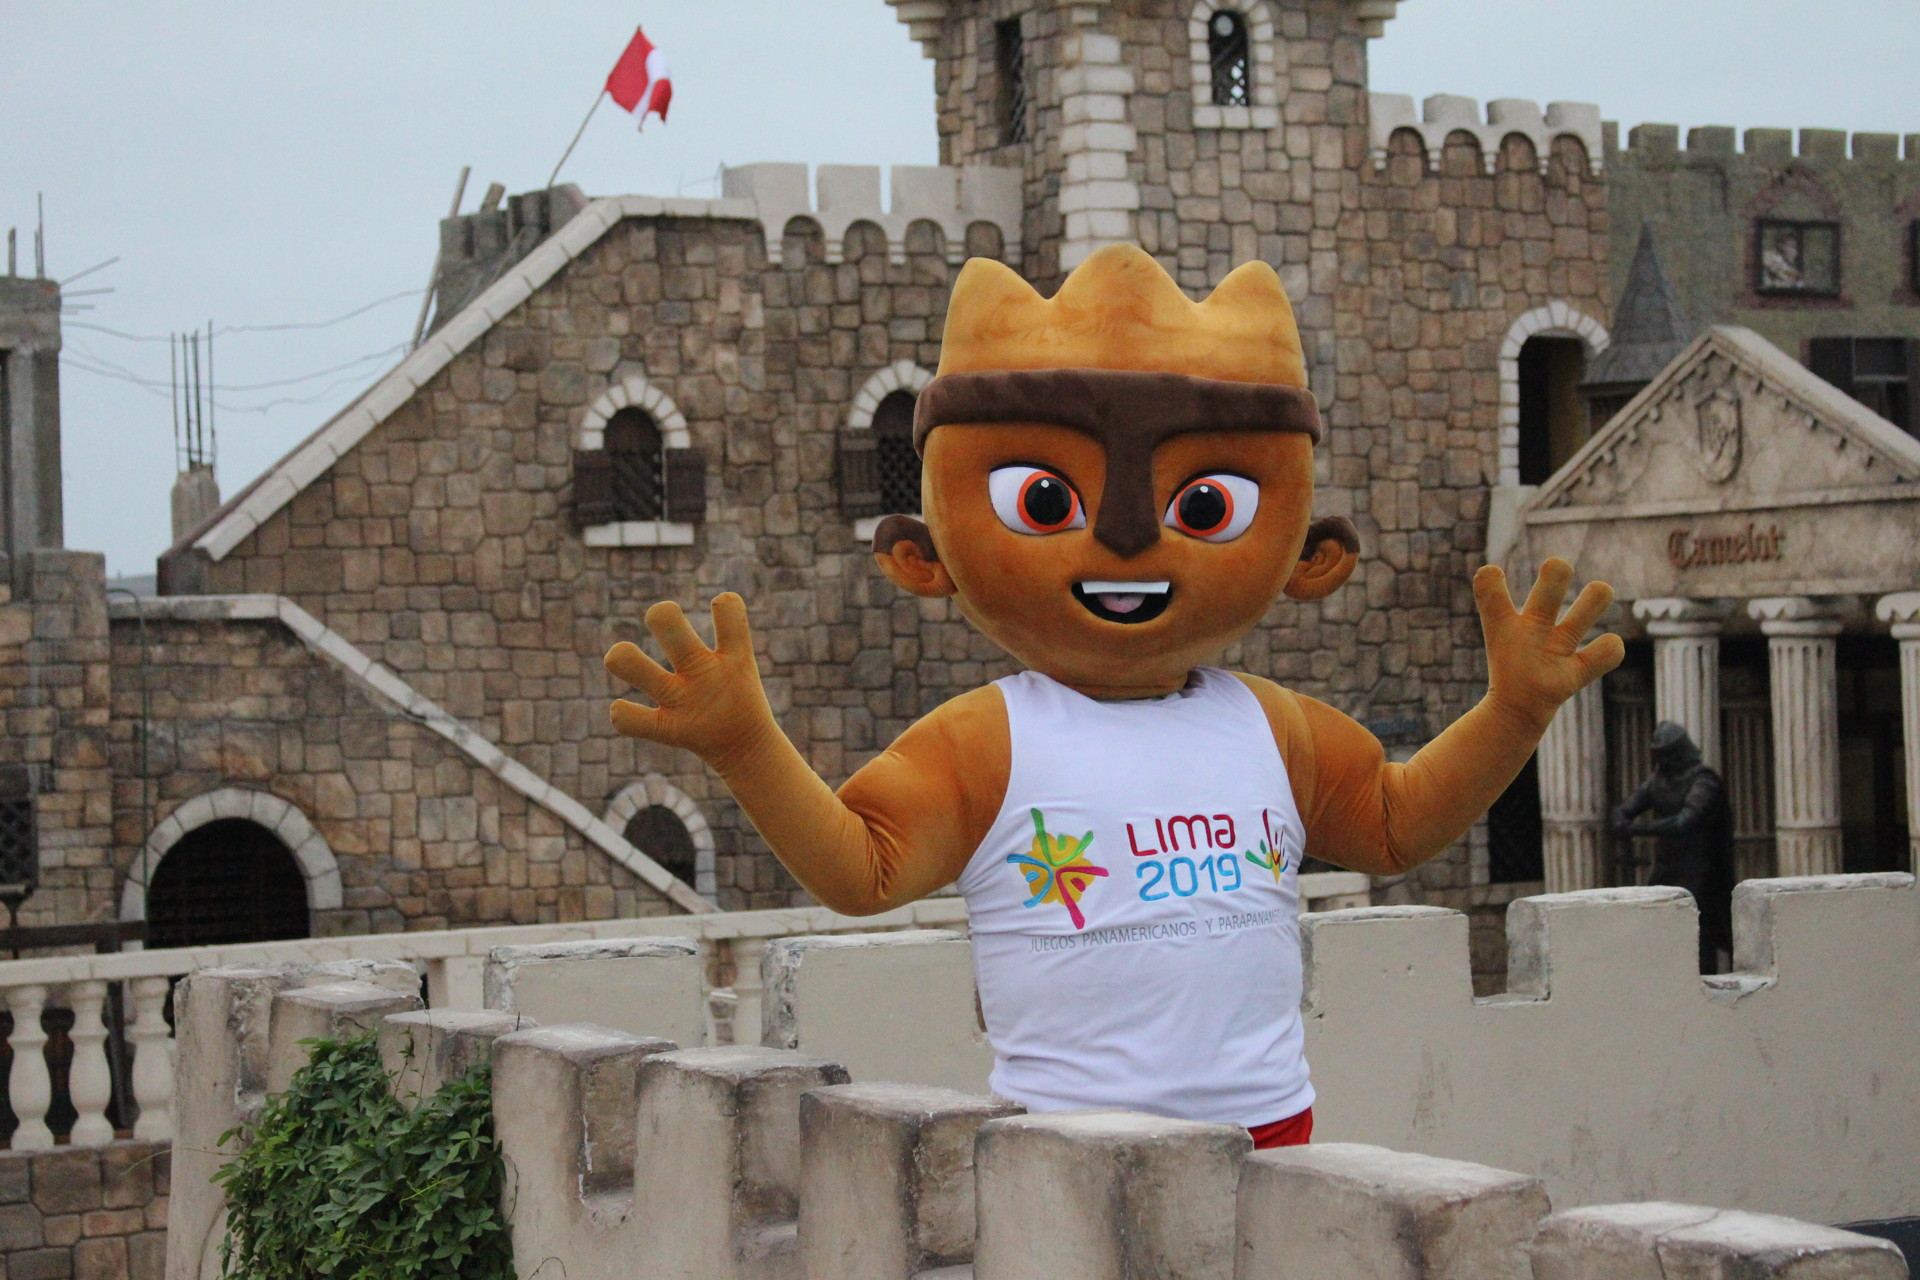 The Lima mascot standing in front of a castle like building